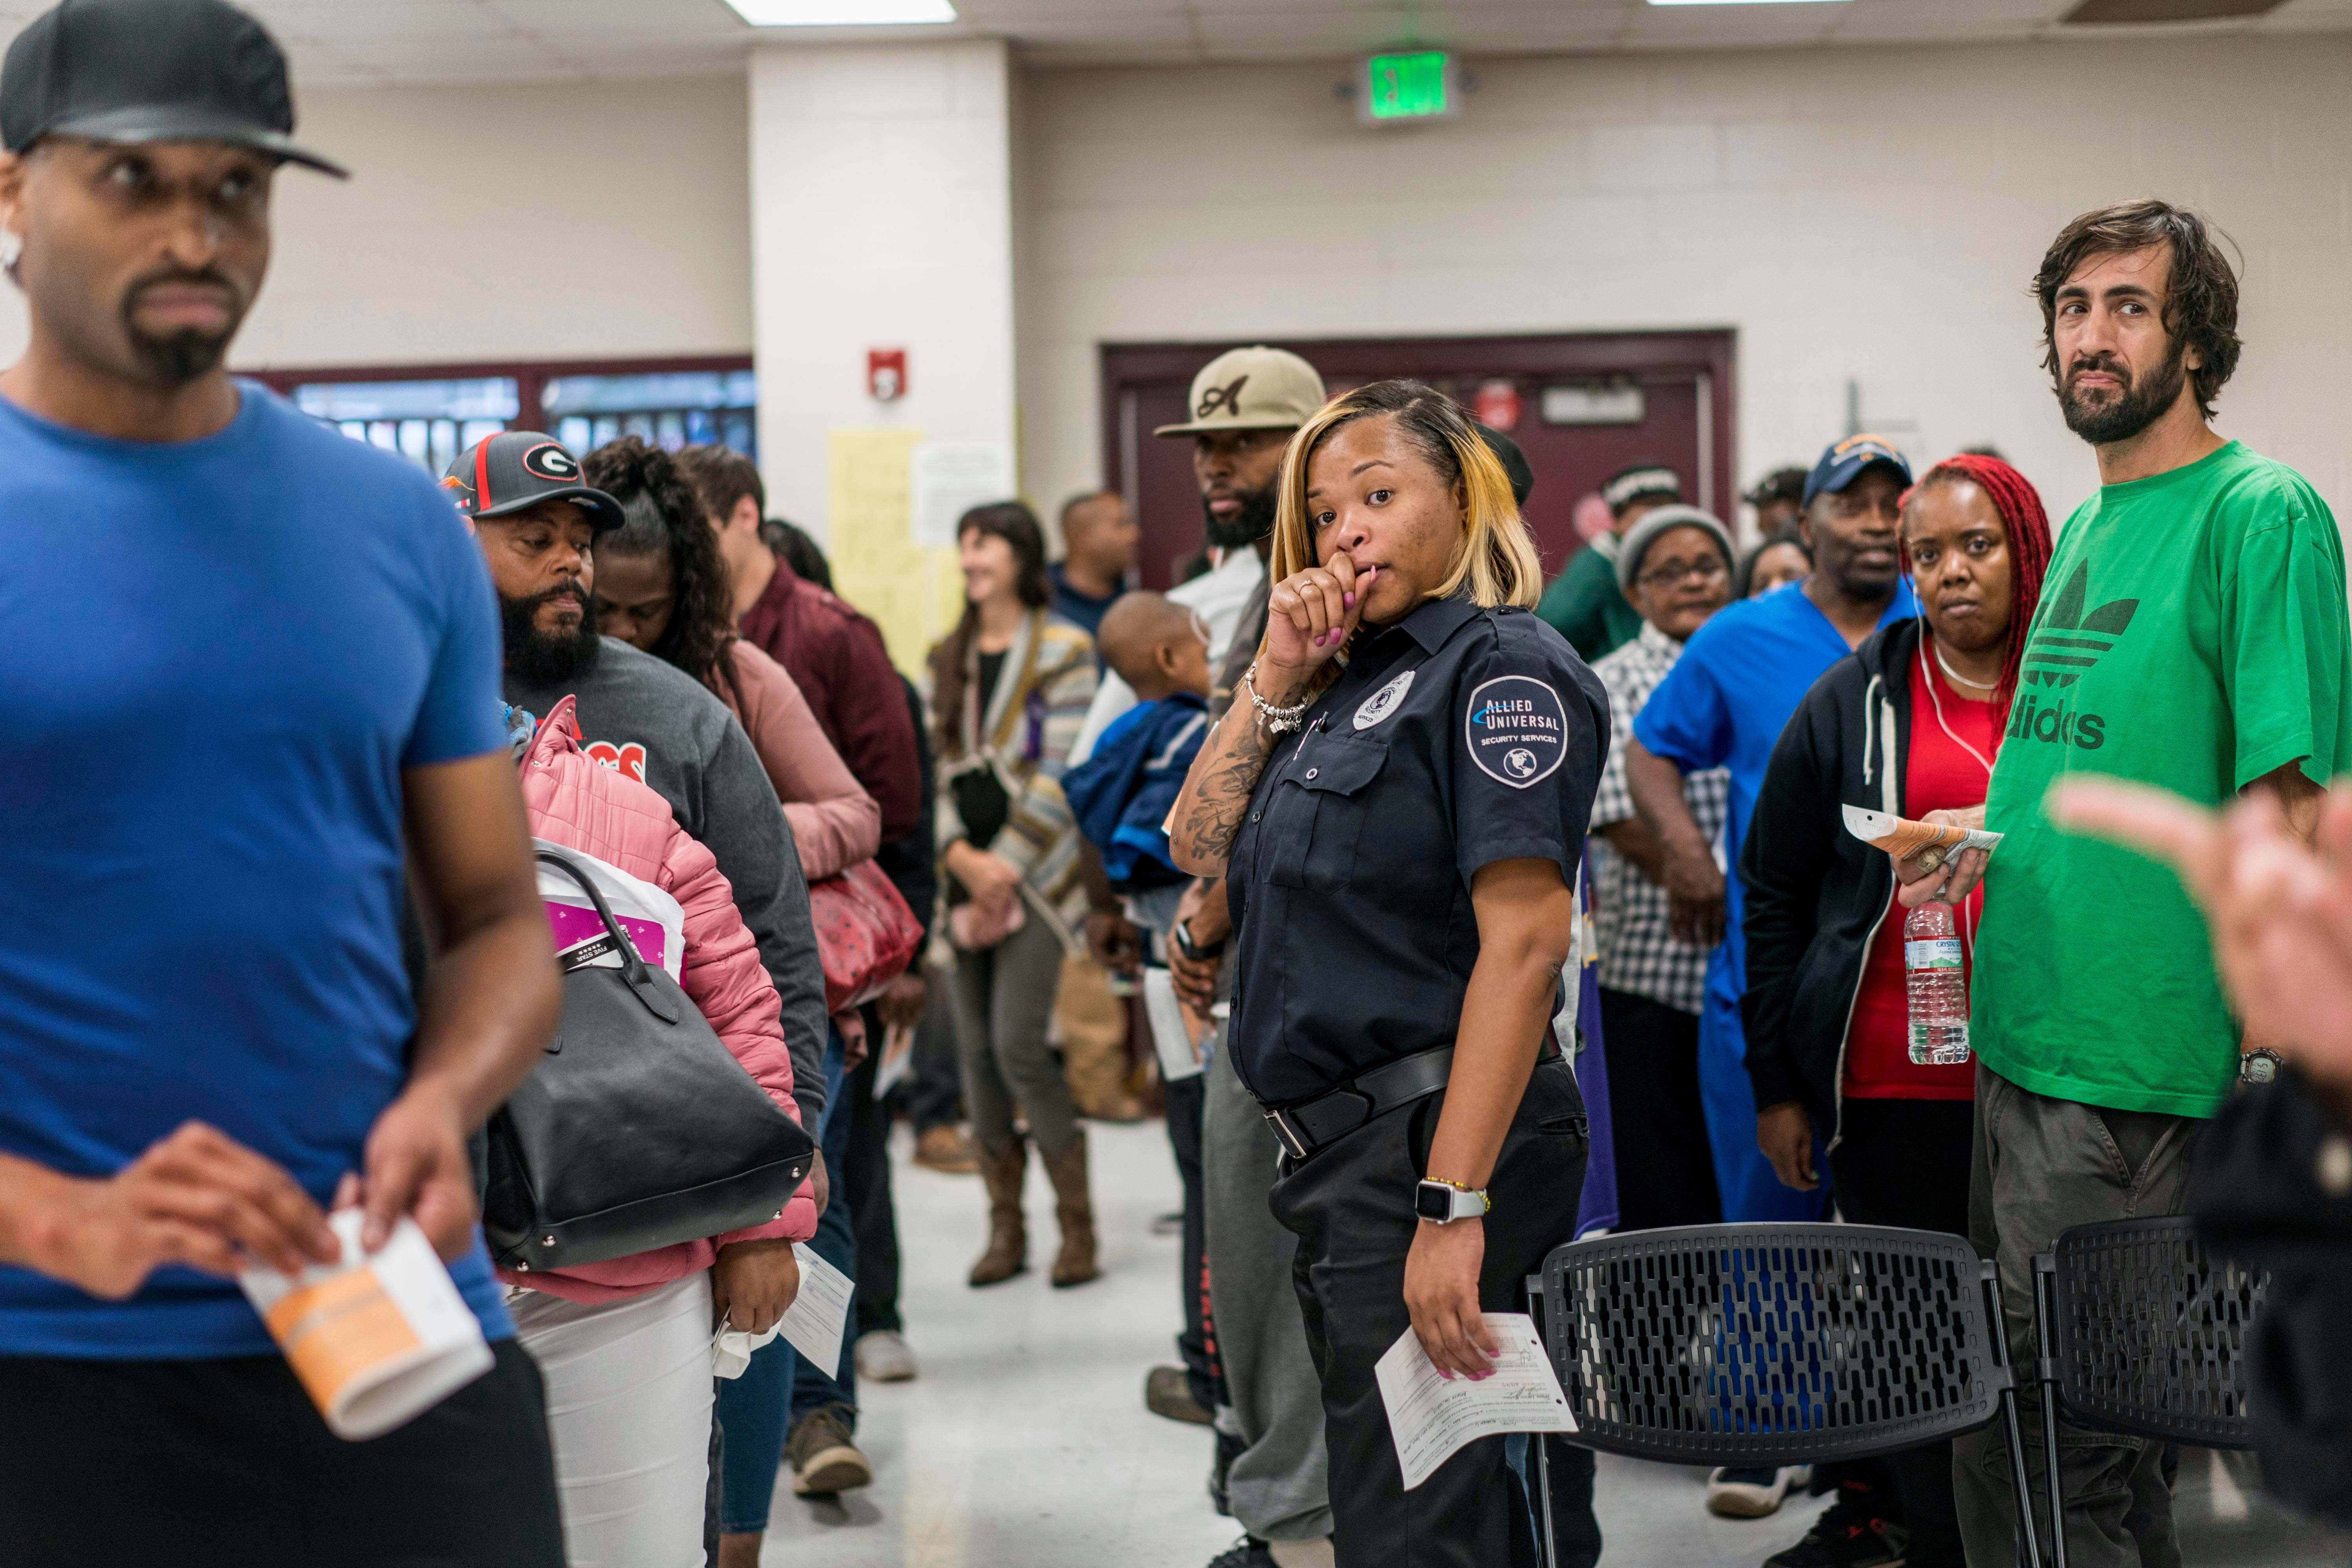 People stand in line to vote at the Pittman Park Recreation Center polling location in Atlanta. A limited number of voting ma